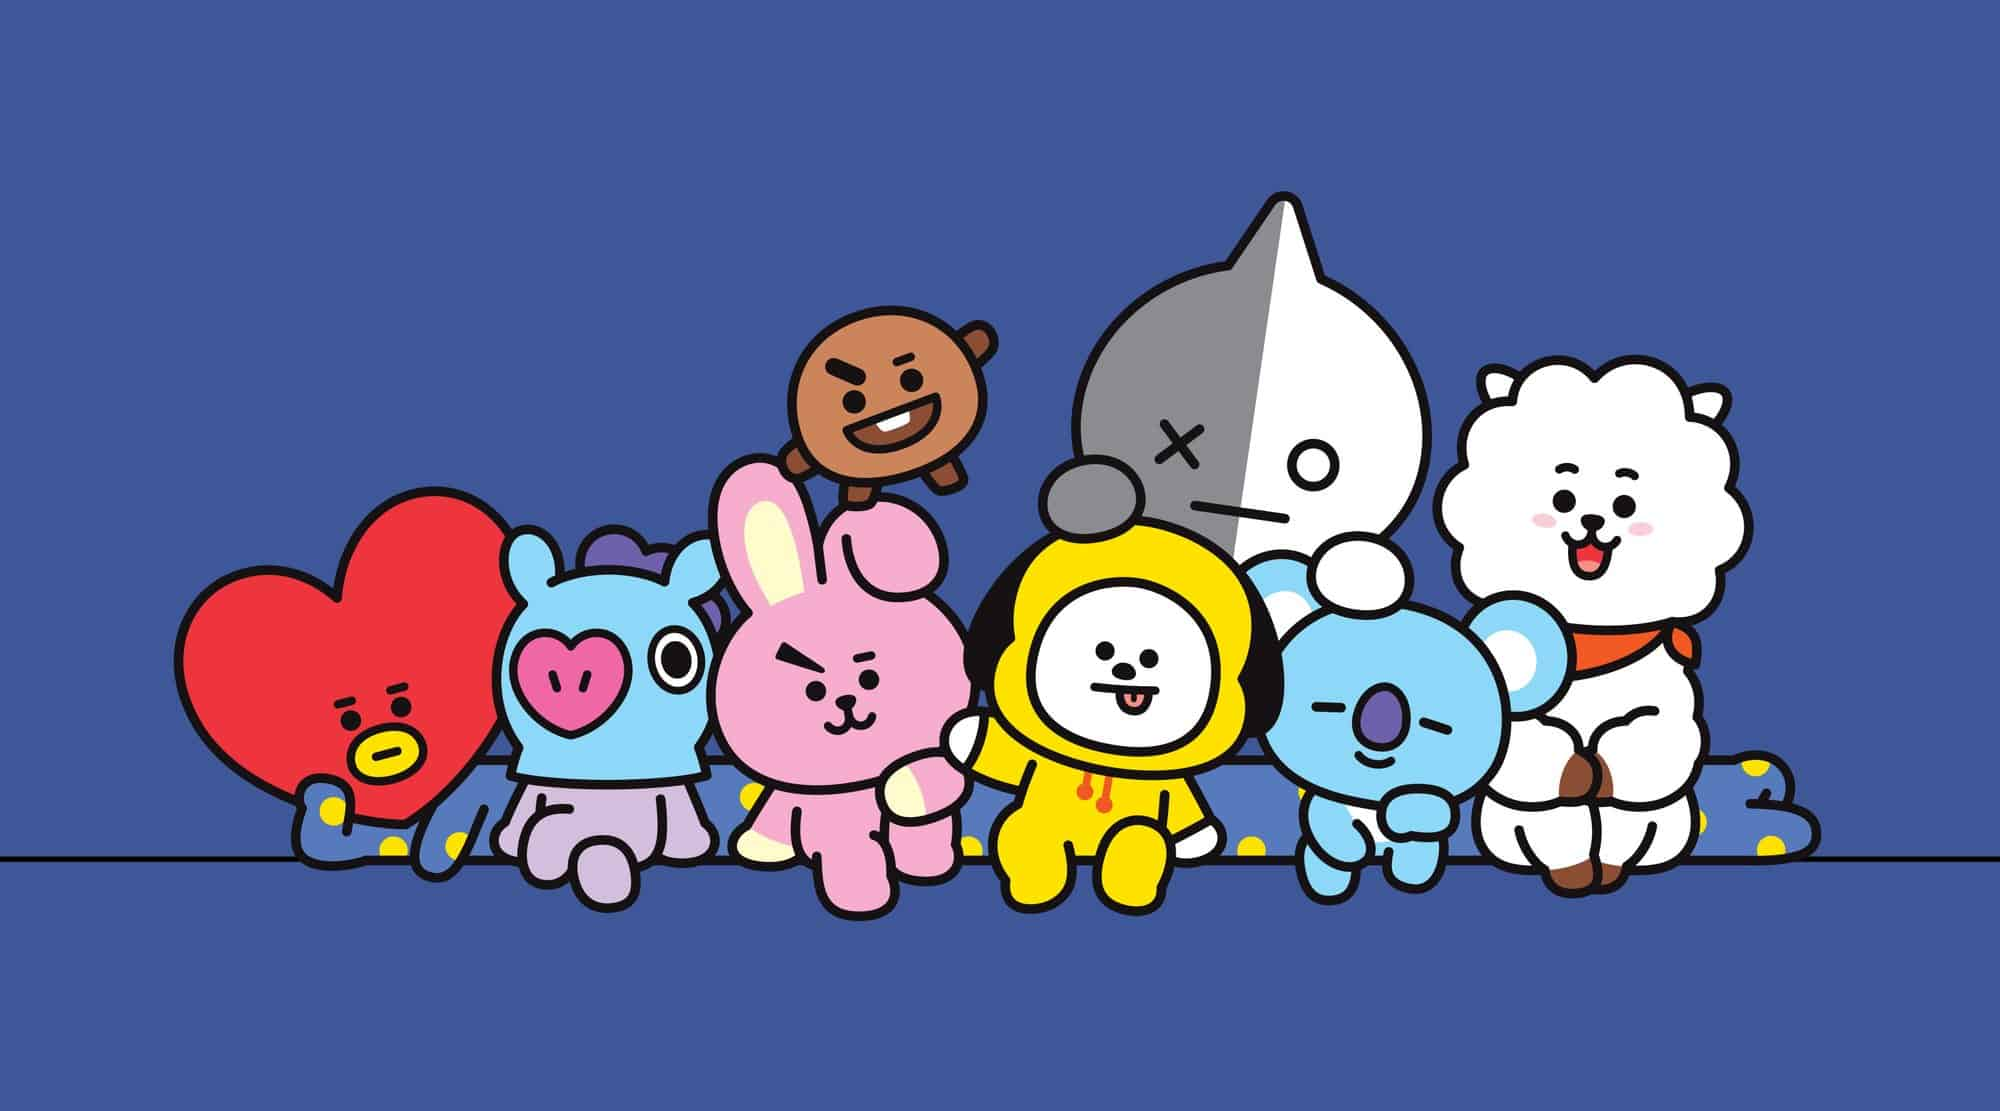 BT21 | Image from the Line Friends Store